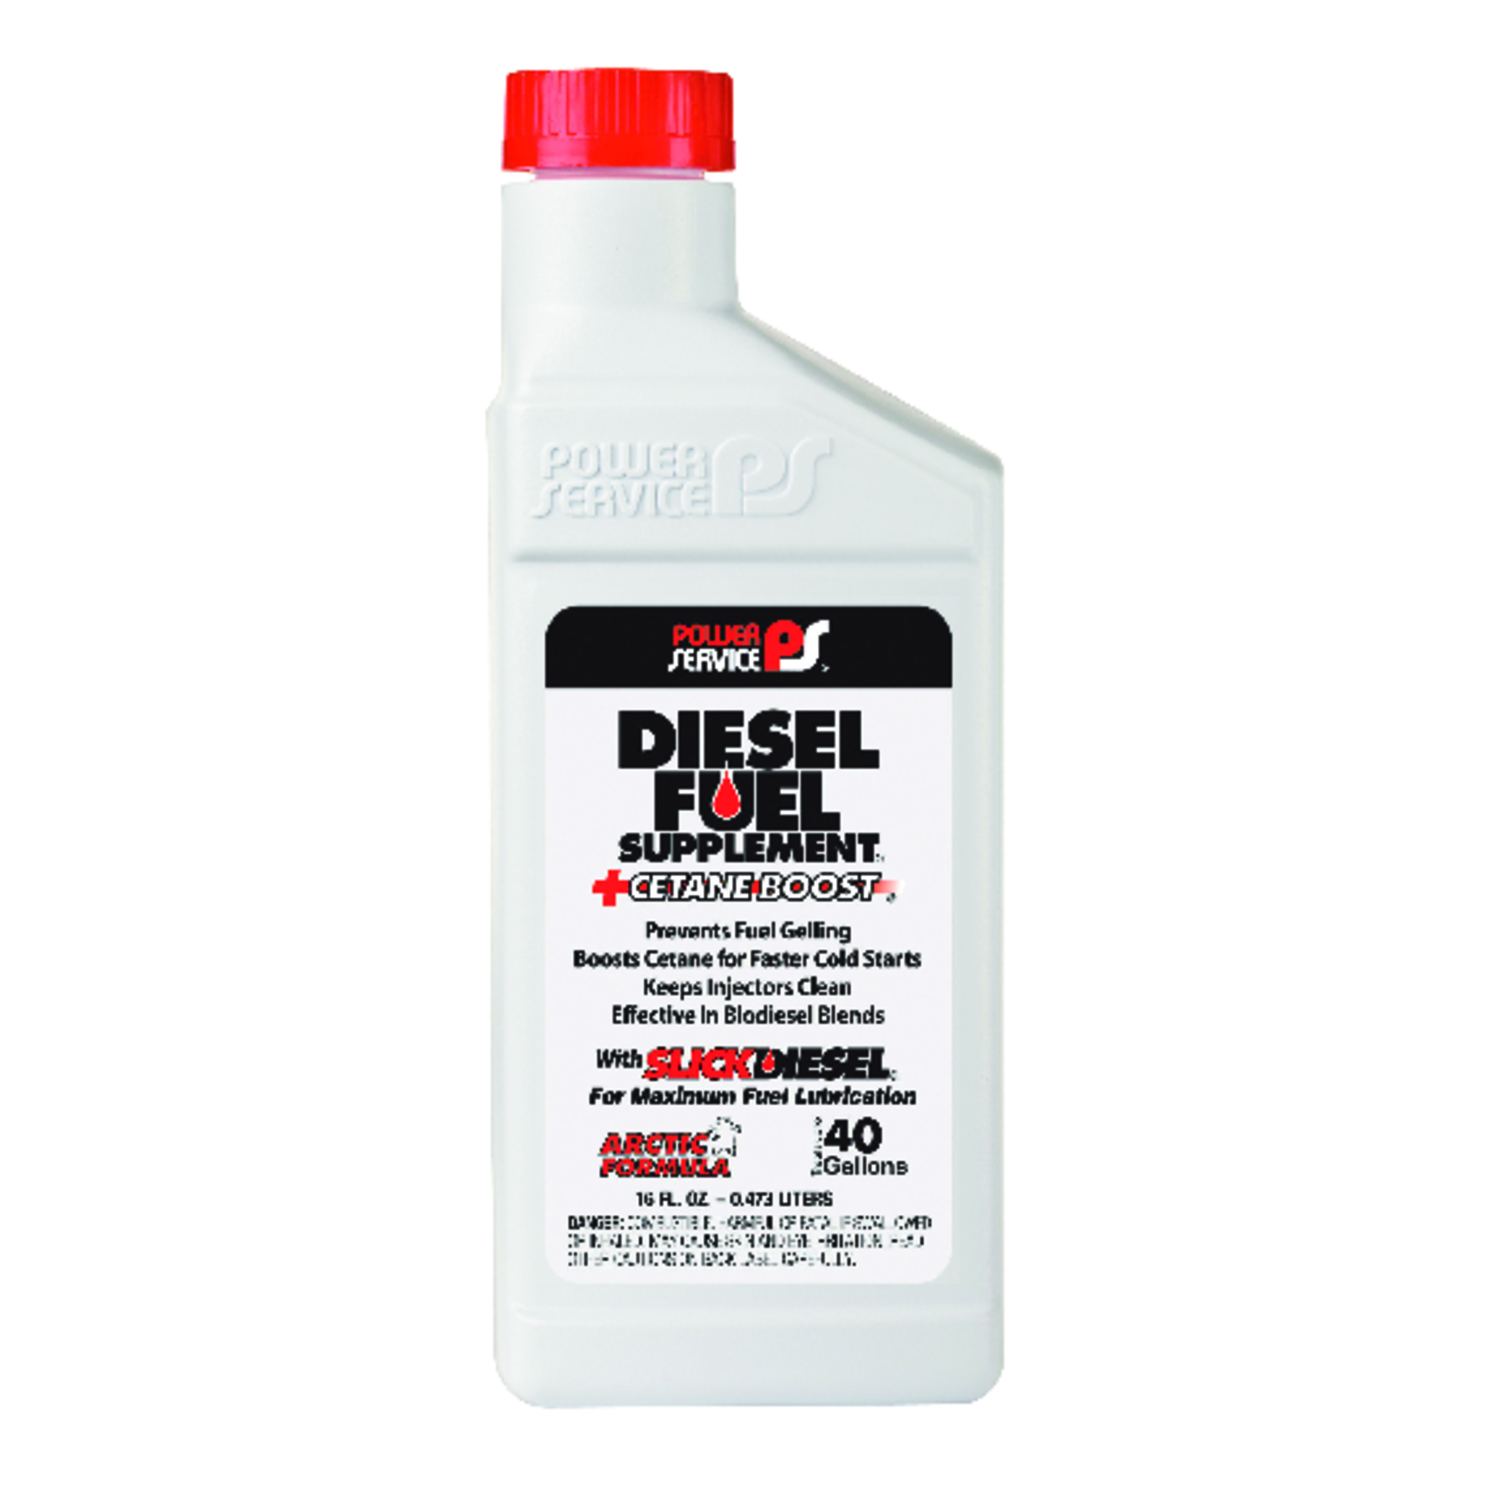 Power Service  Diesel Fuel Supplement  Diesel  Fuel Treatment  16 oz.